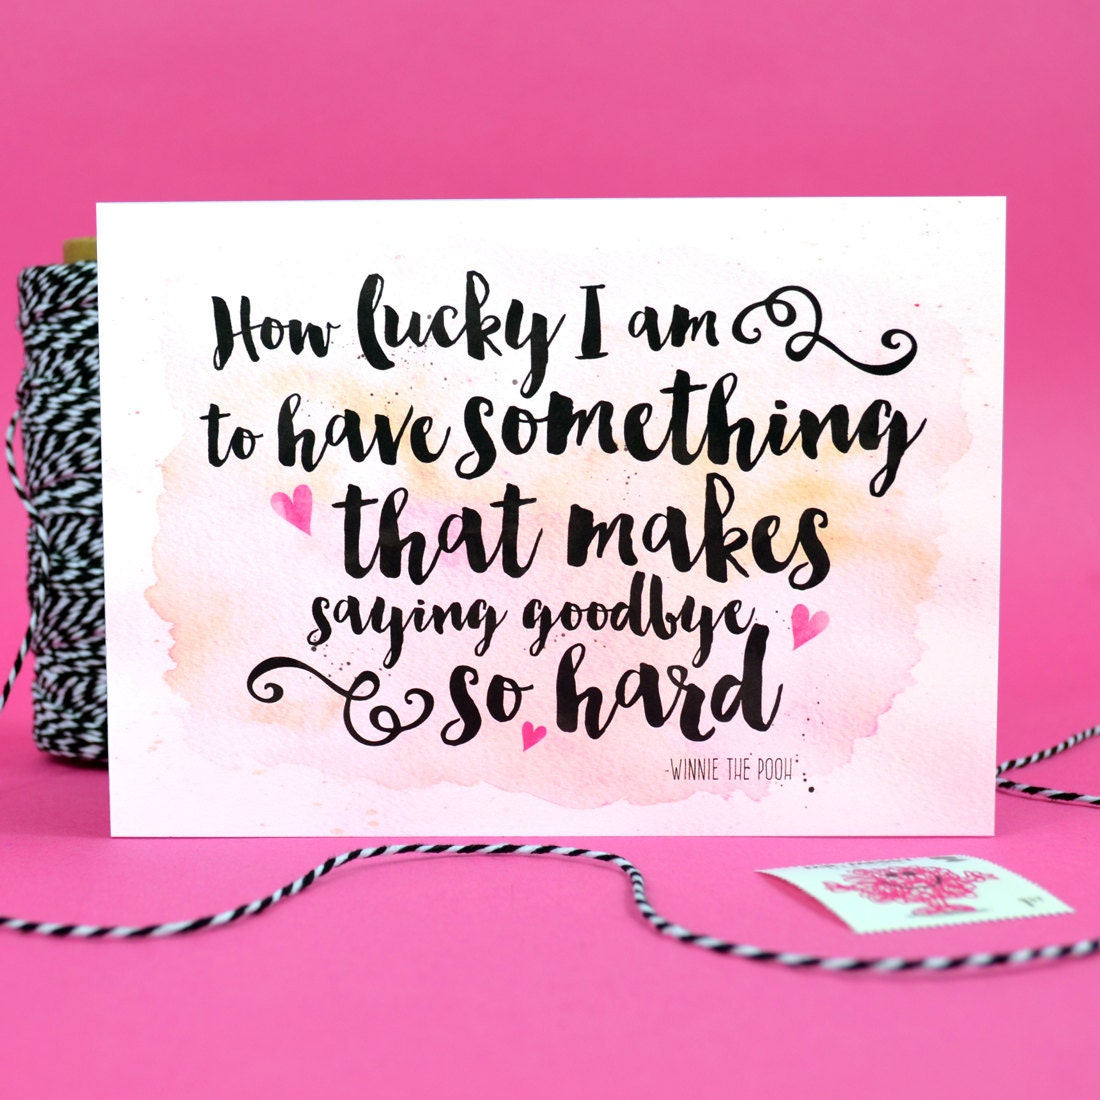 Goodbye leaving card winnie the pooh quote how lucky i am zoom kristyandbryce Image collections